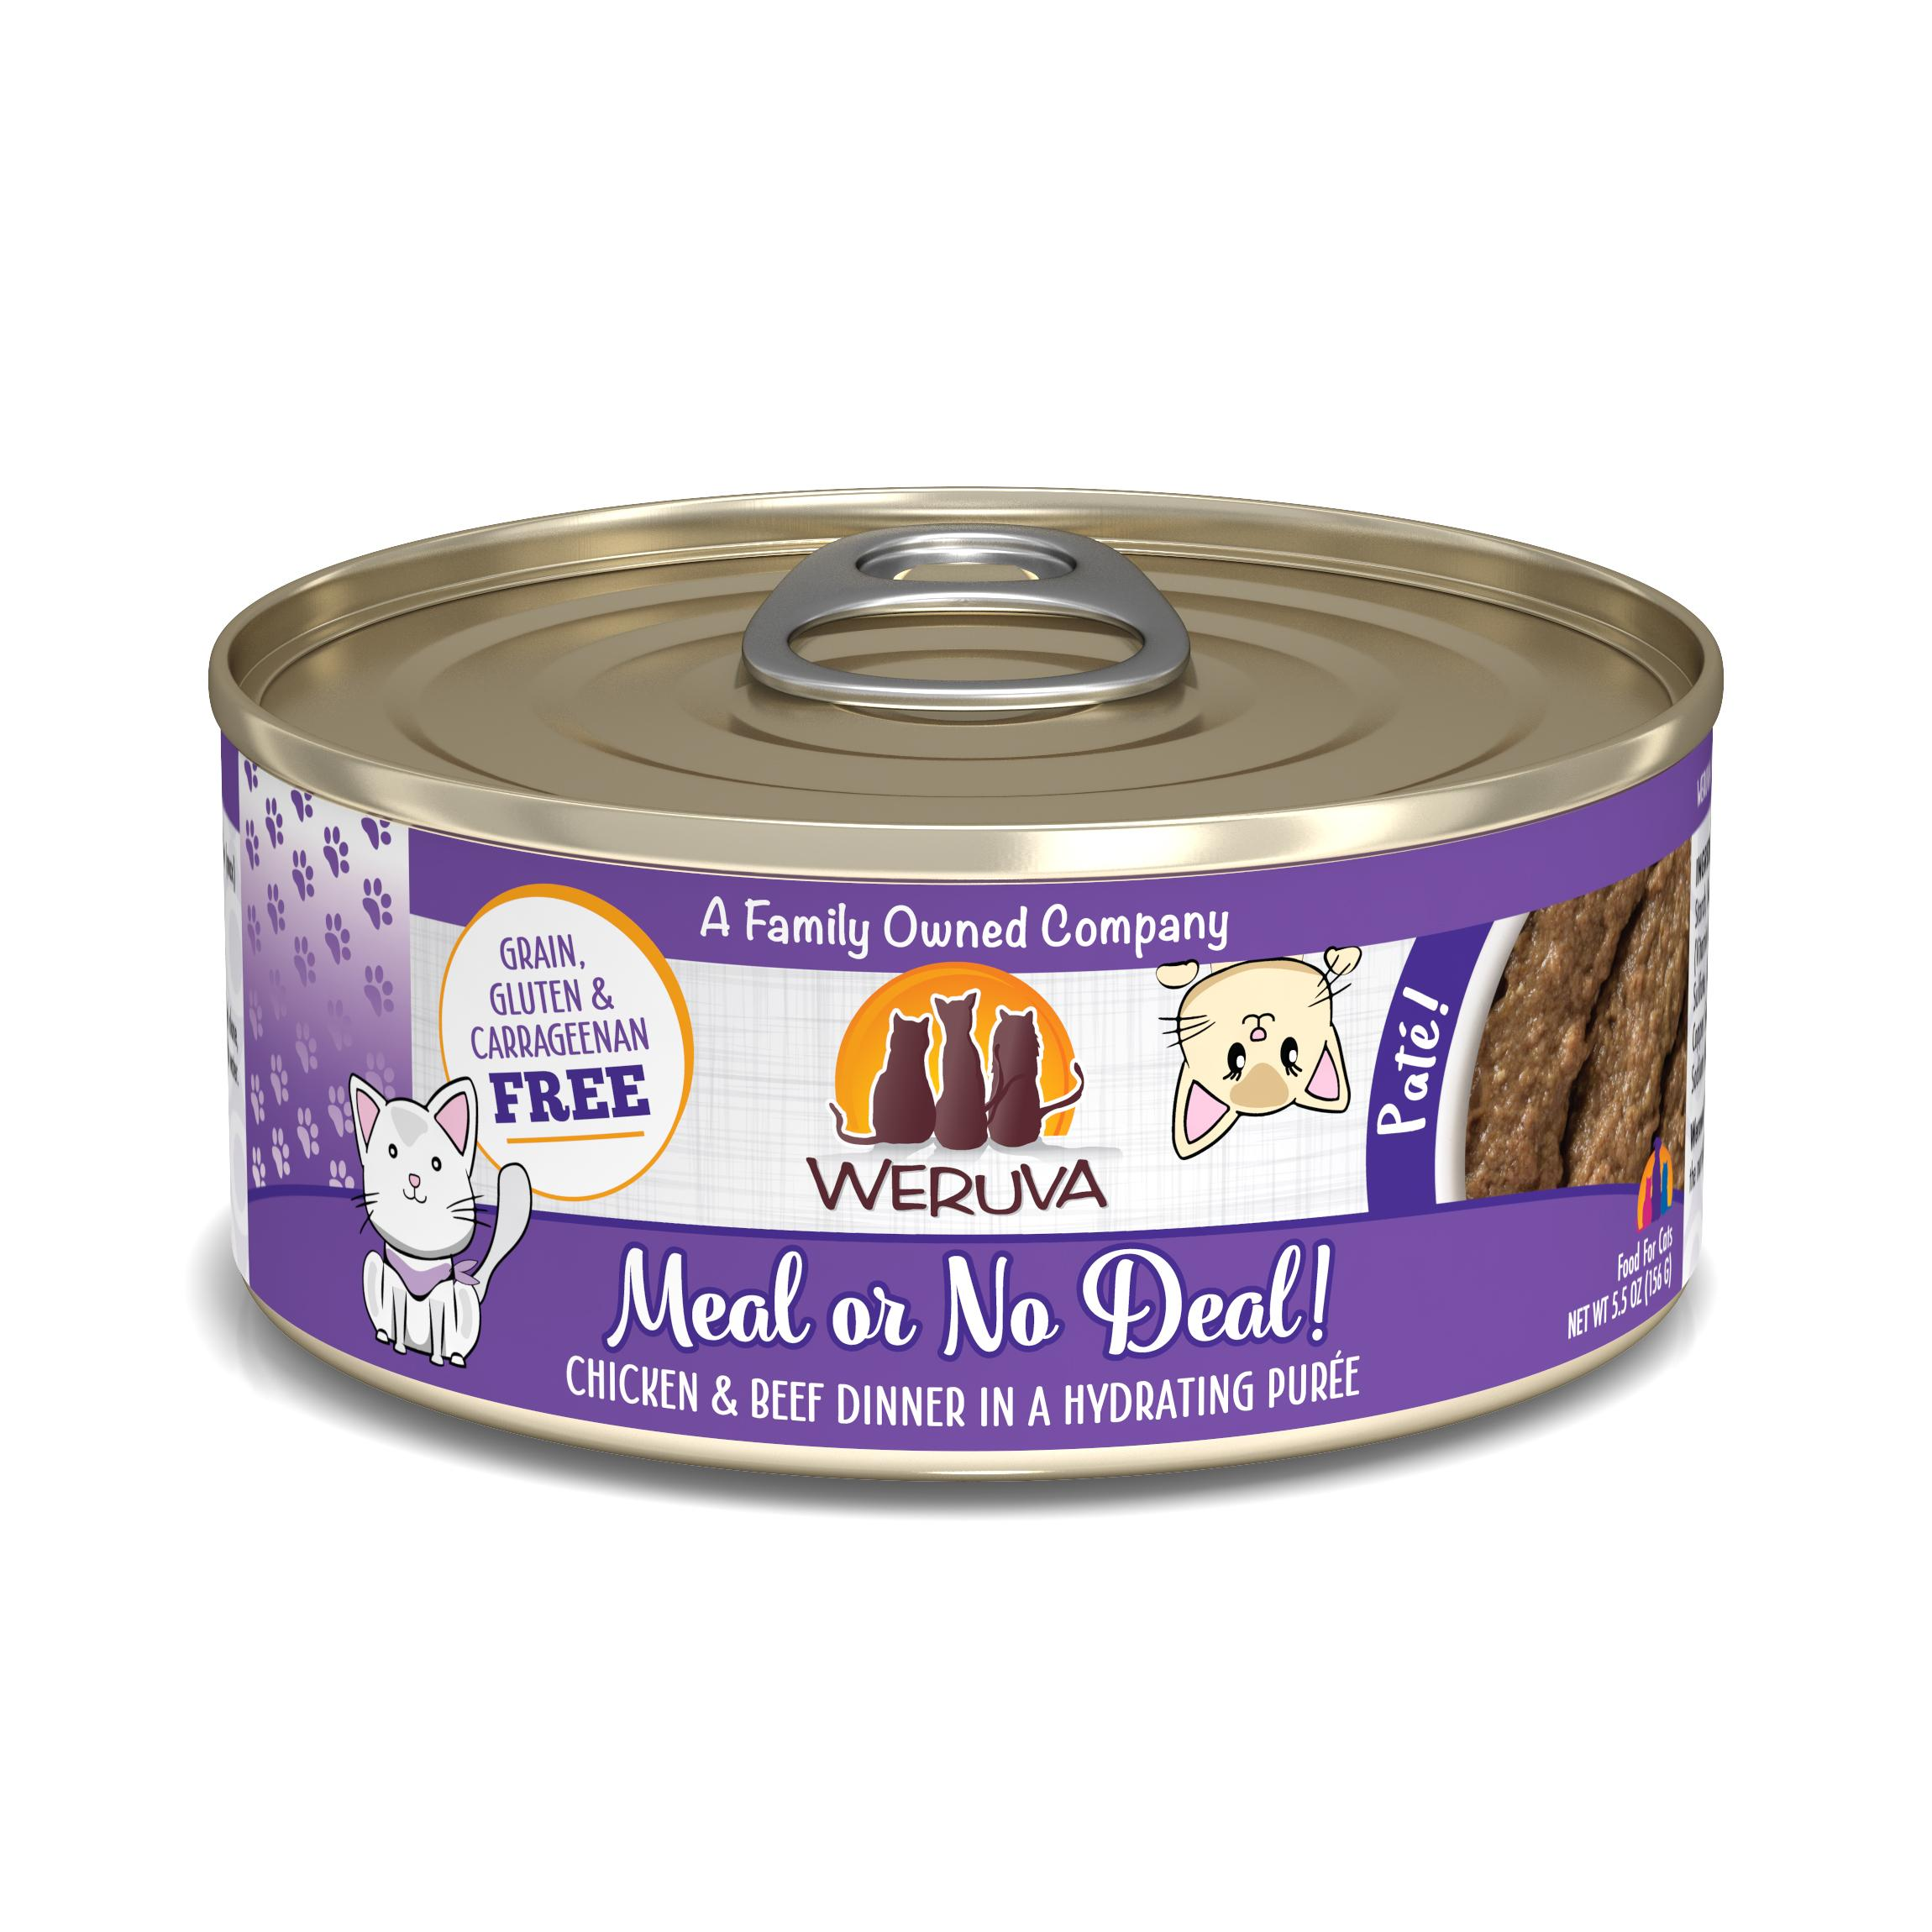 Weruva Cat Pate Meal or No Deal! Chicken & Beef Dinner in Puree Wet Cat Food, 5.5-oz can